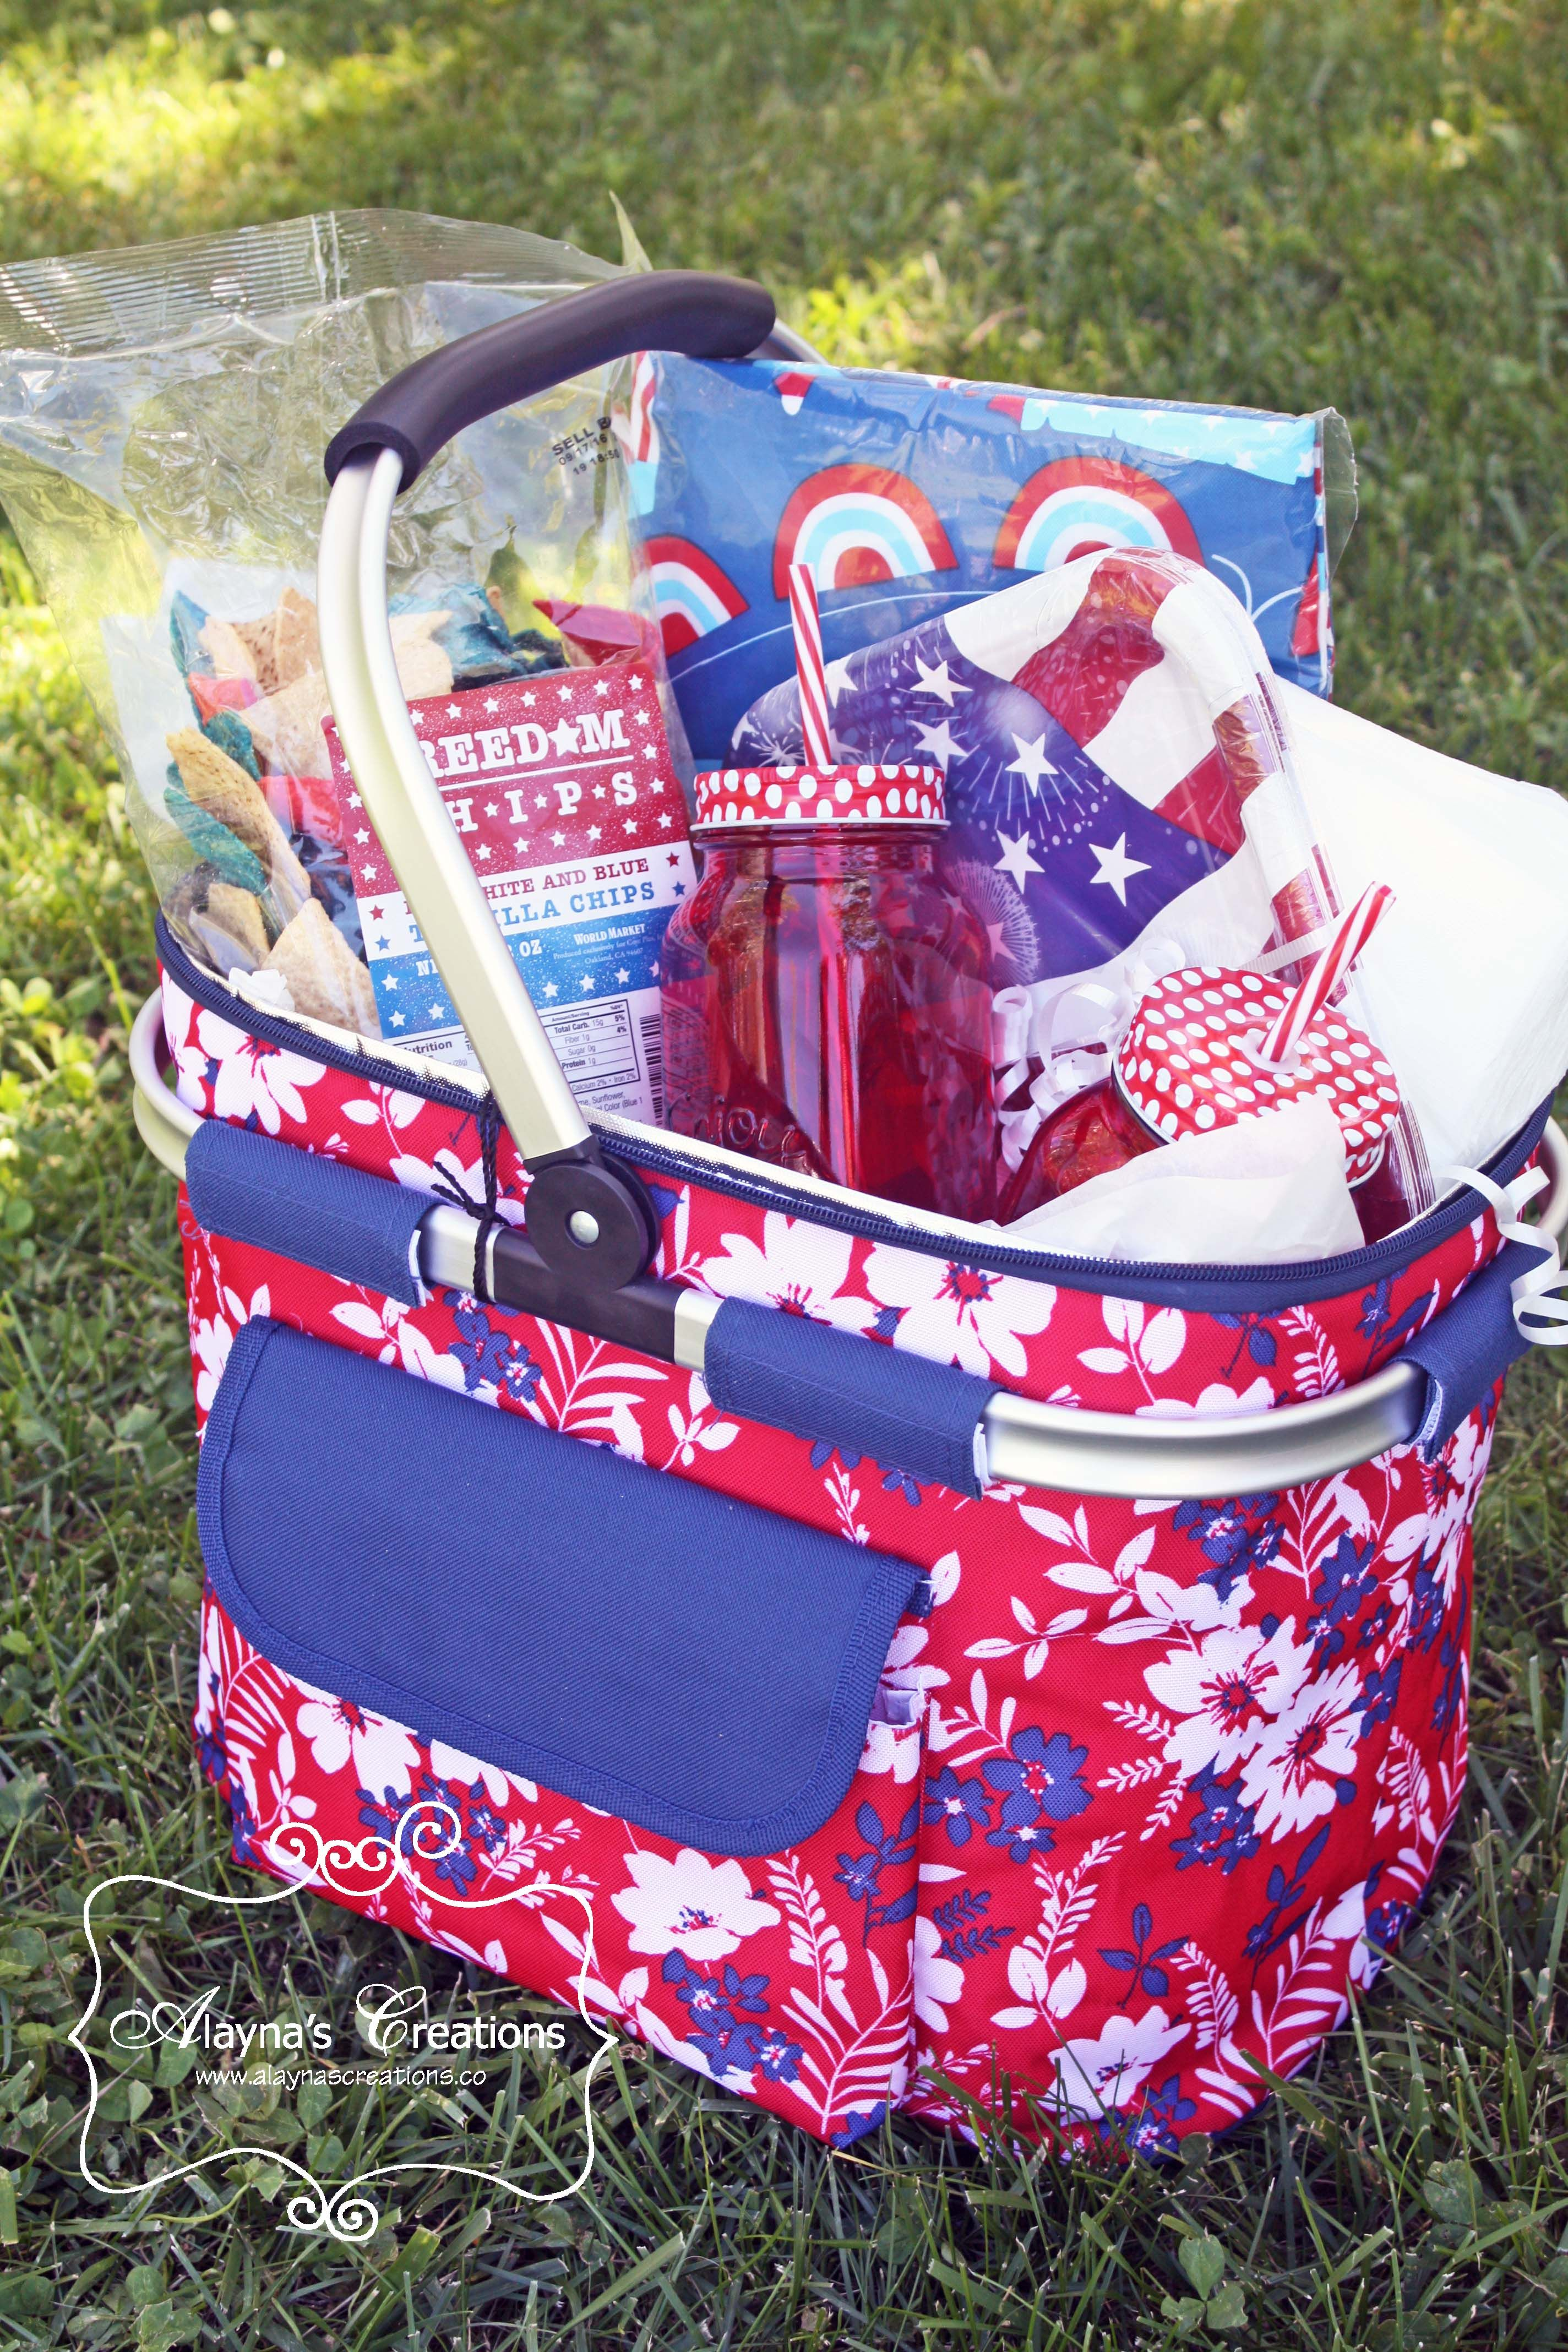 Ideas For A Picnic Basket Gift : Picnic themed summer gift basket patriotic red white and